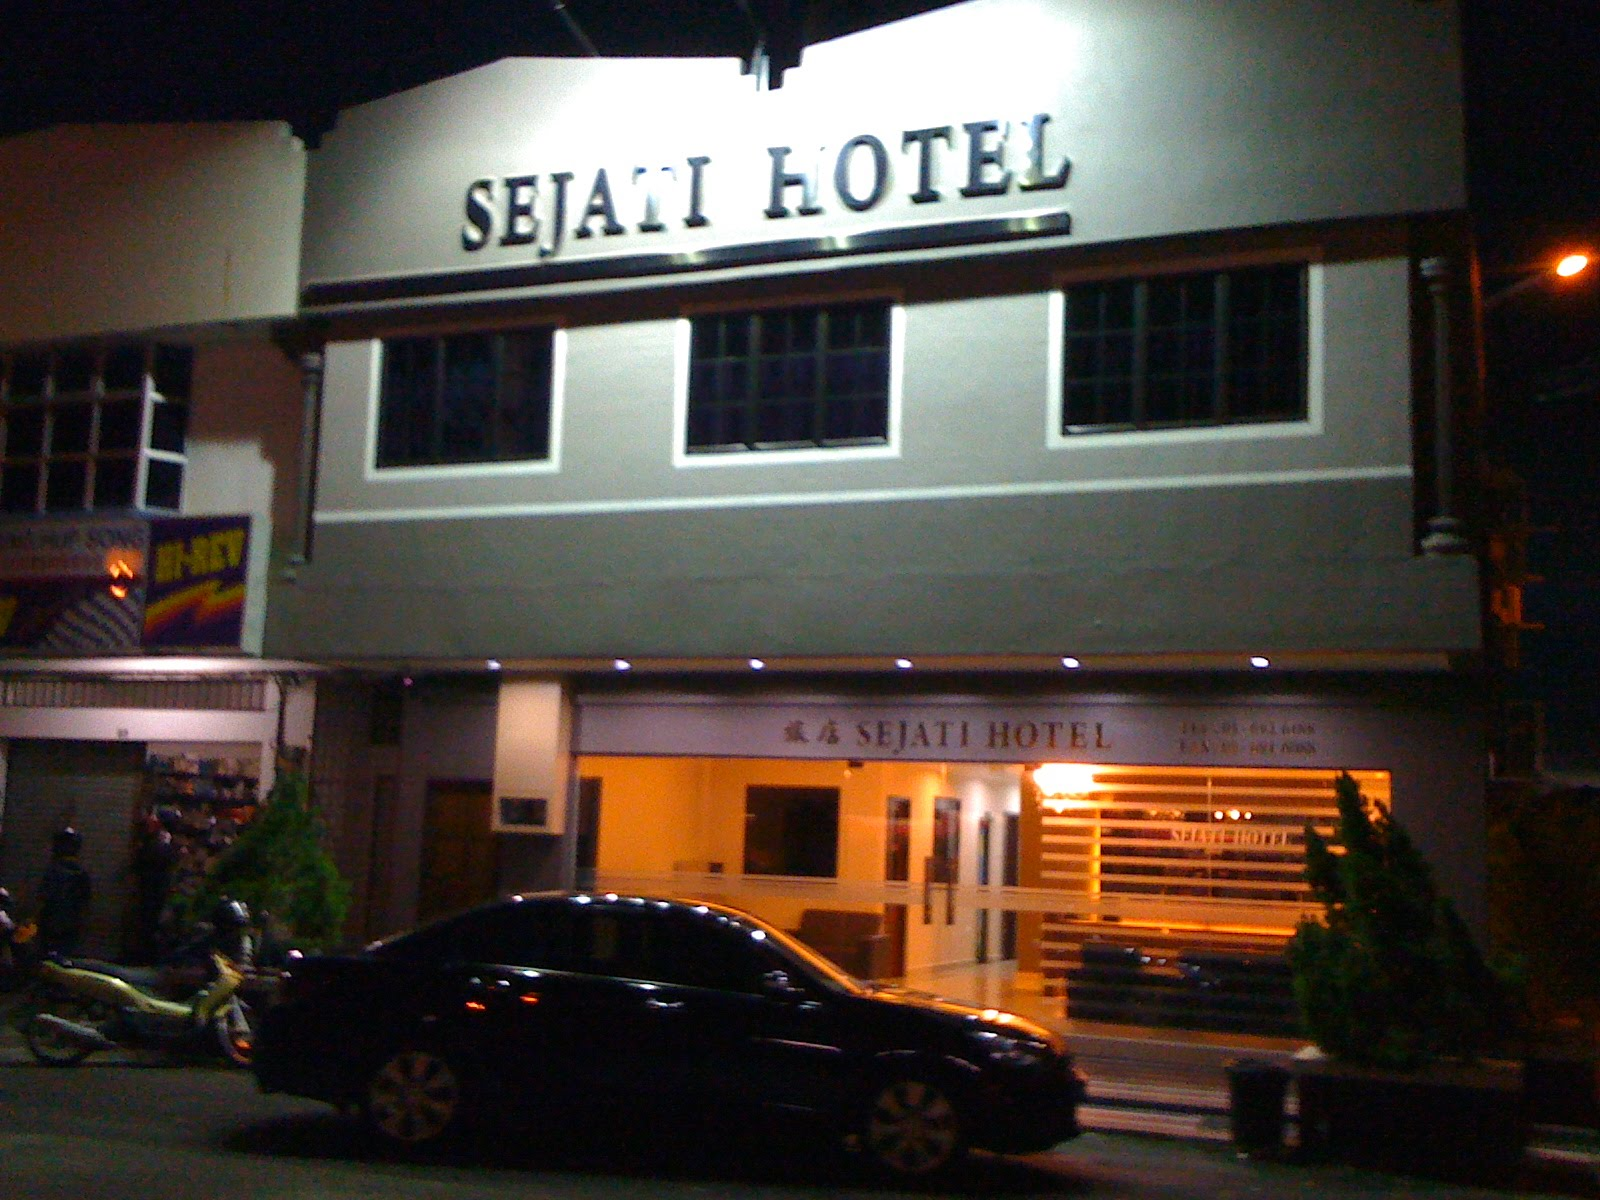 IMAGE SEJATI HOTEL AT SITIAWAN PERAK UR SERVICE HI SPEED WI FILCDLOBYCUSTOMER CALL SERVIS 24 HOUR ADDRESS 15 TAMAN JLN LUMUT 32000